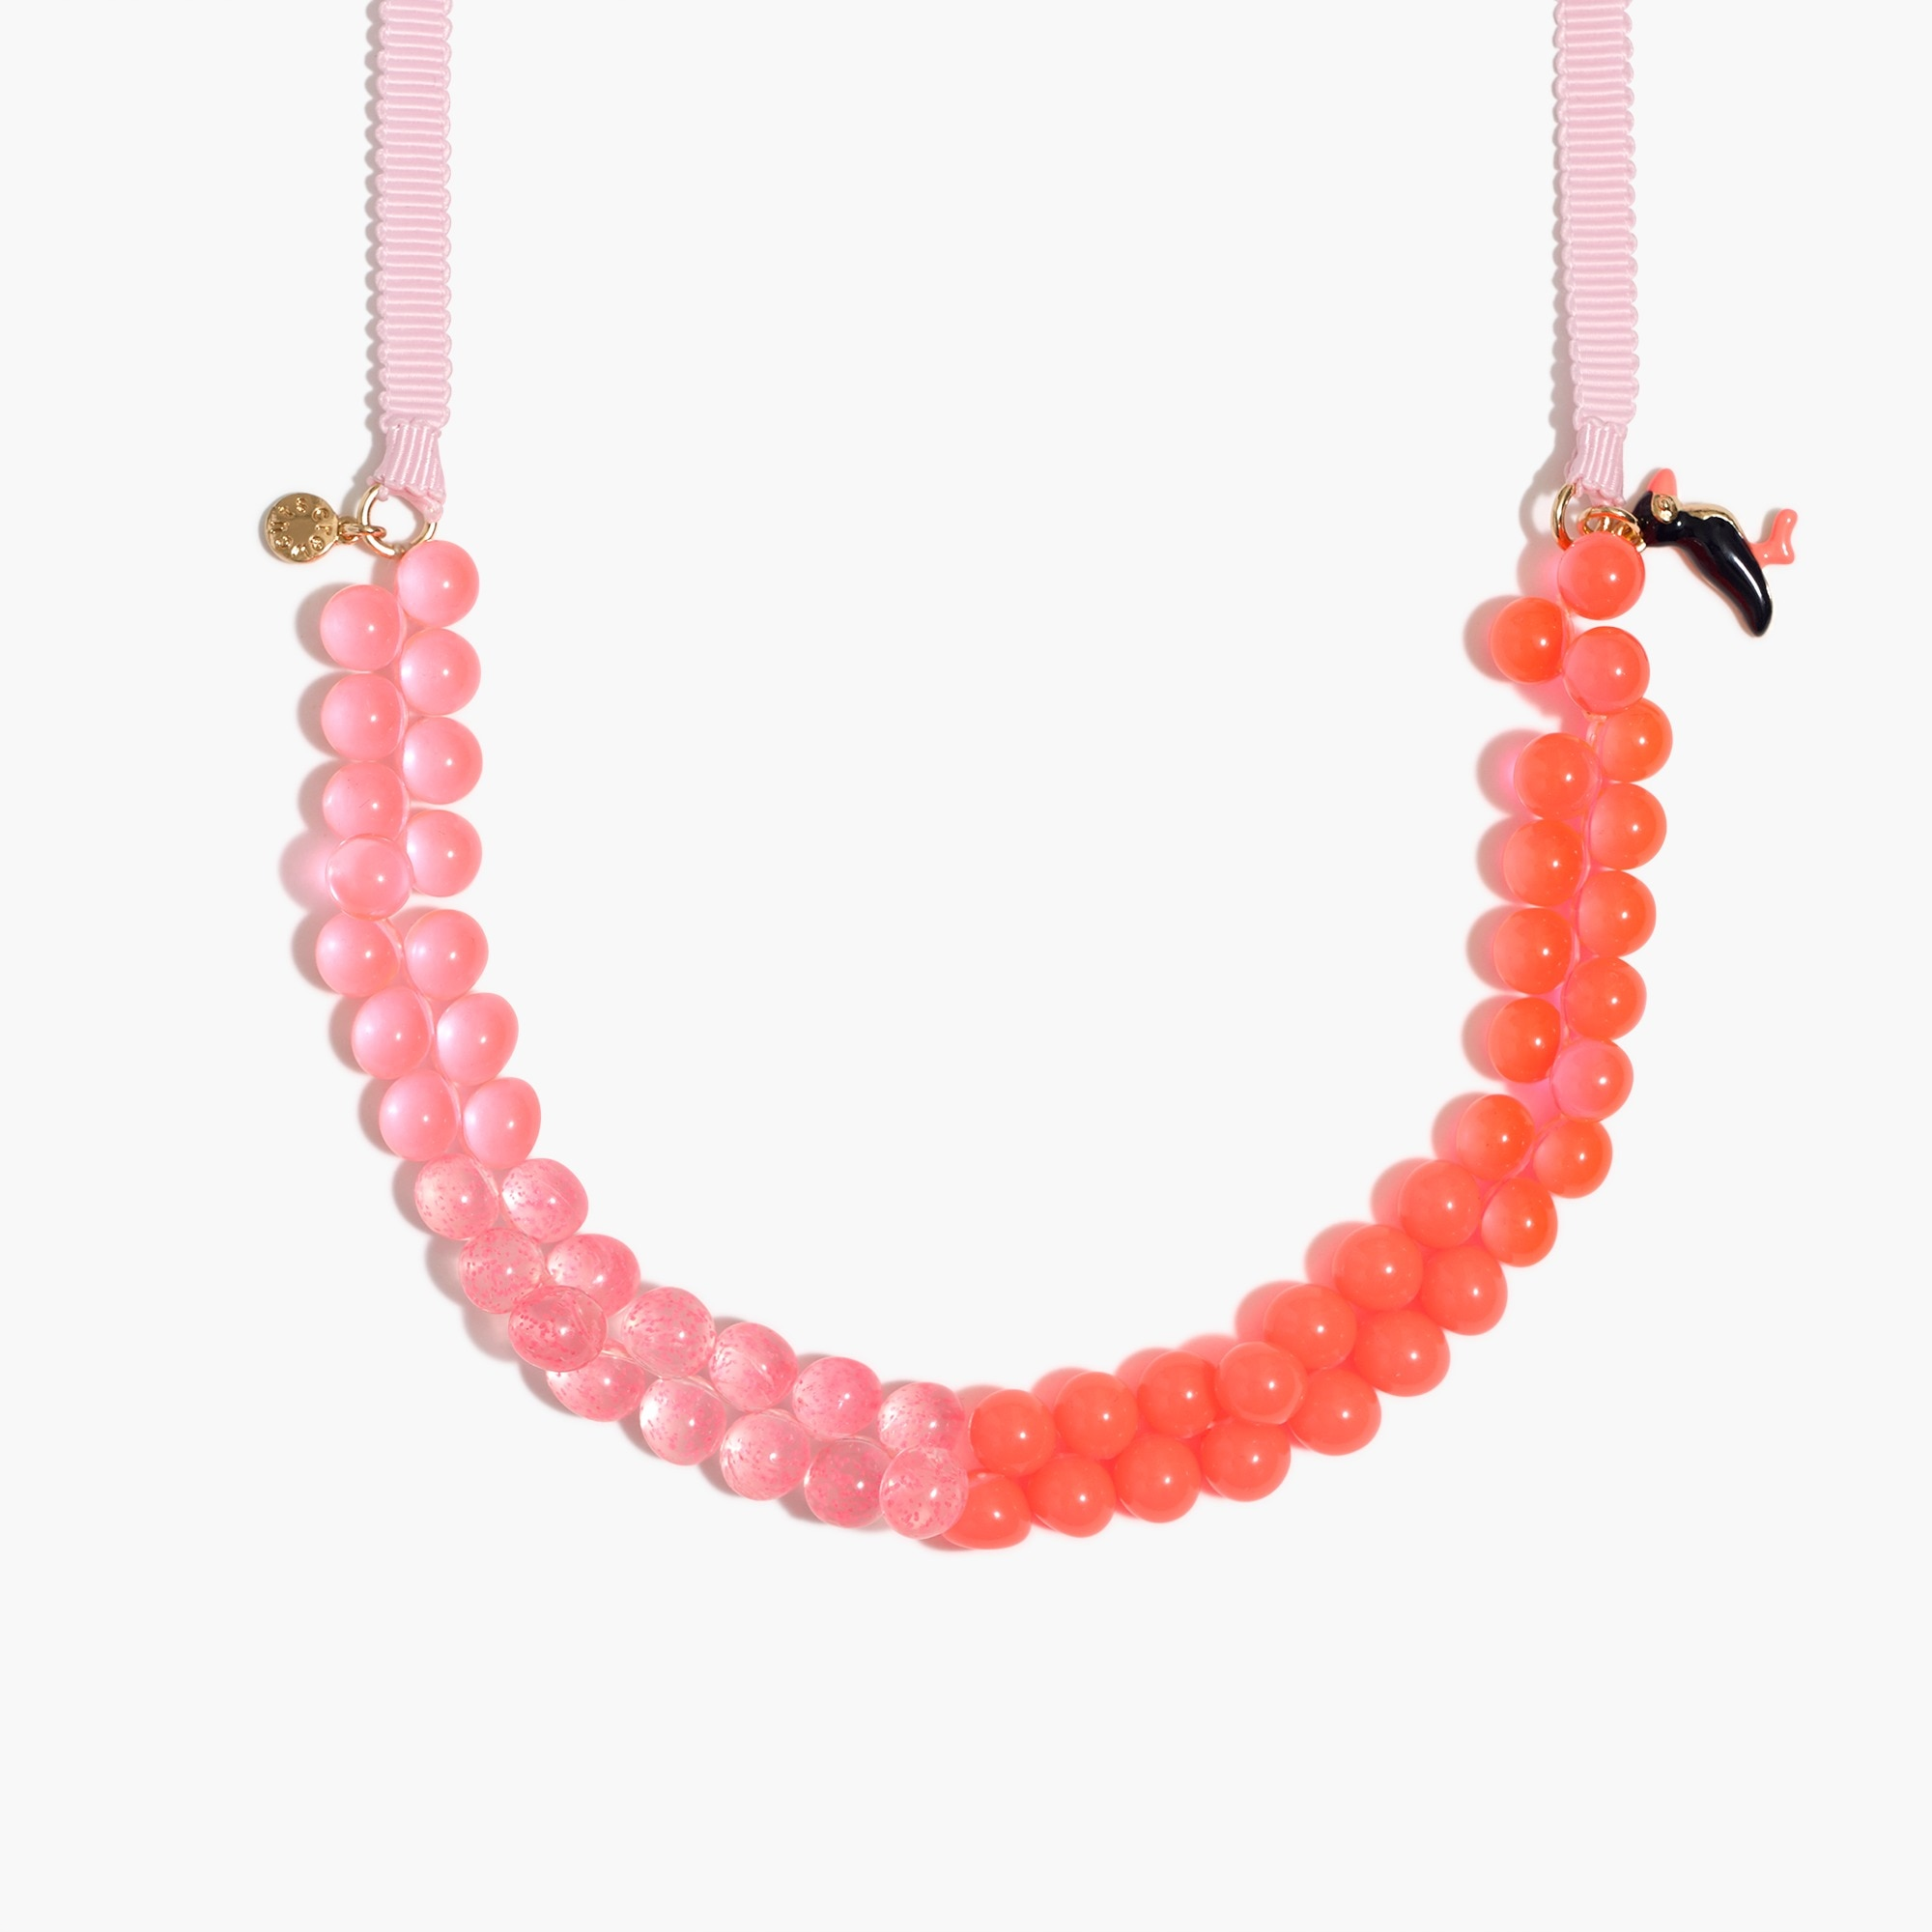 Girls' two-tone gumball necklace